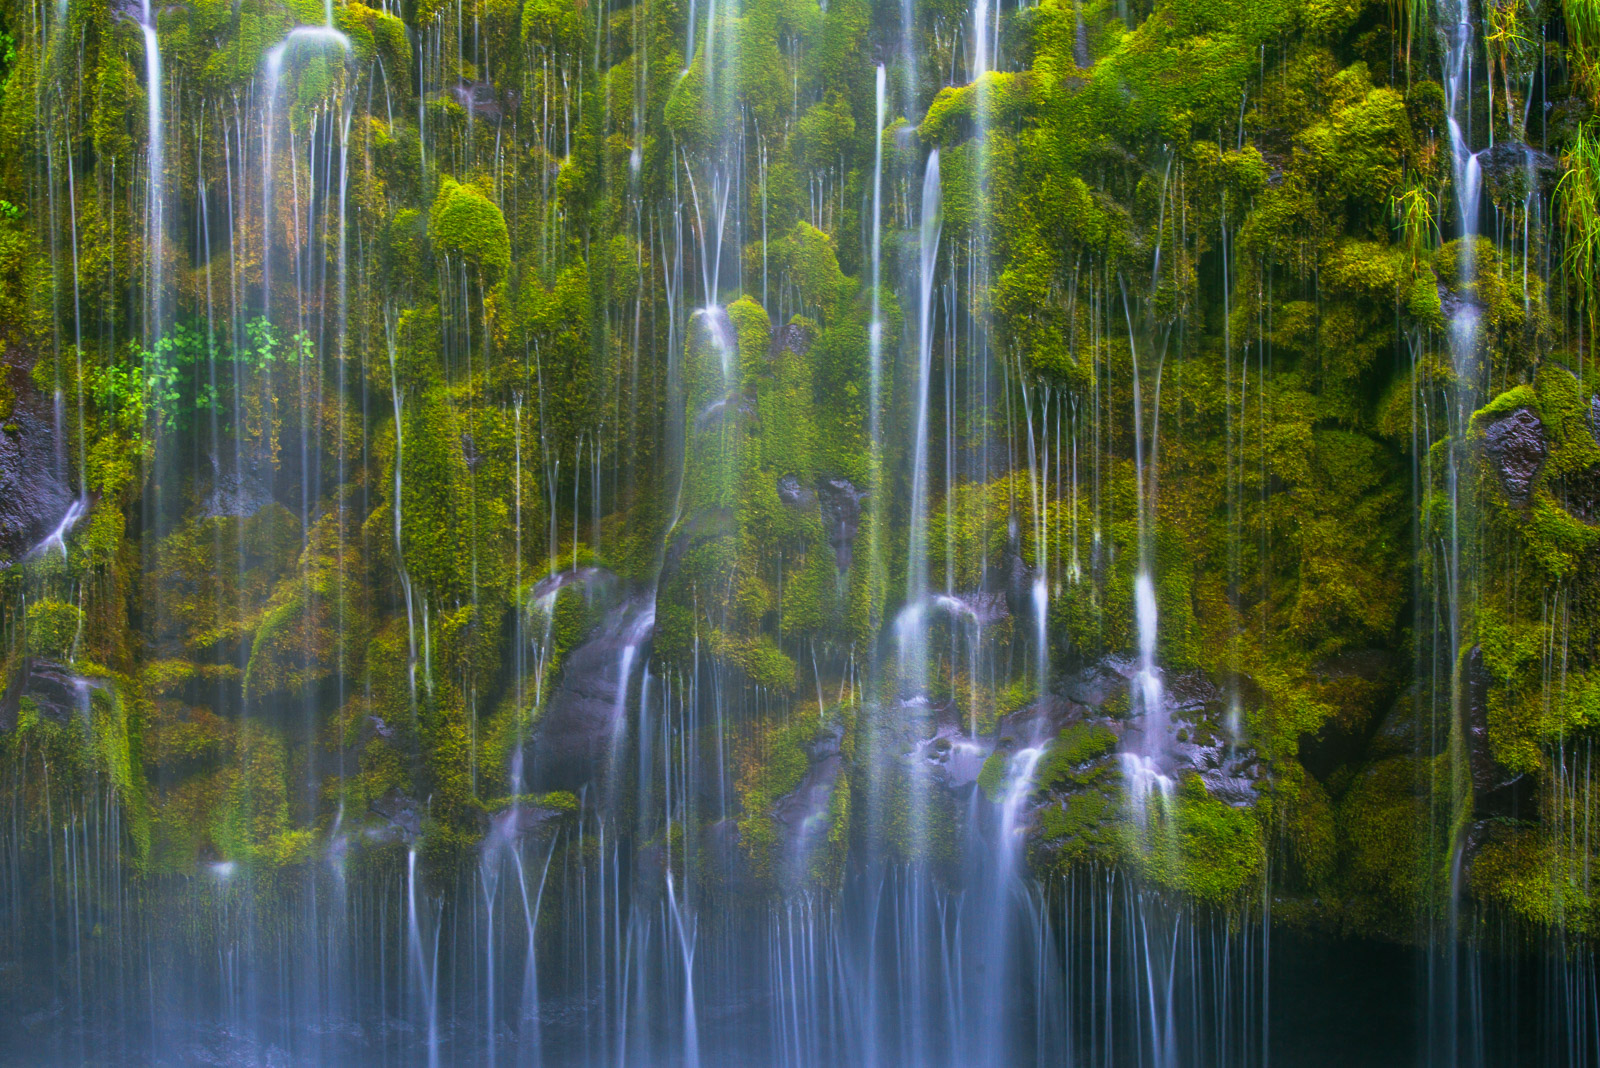 A close up section of moss and water falling in delicate patterns over Mossbrae Falls.